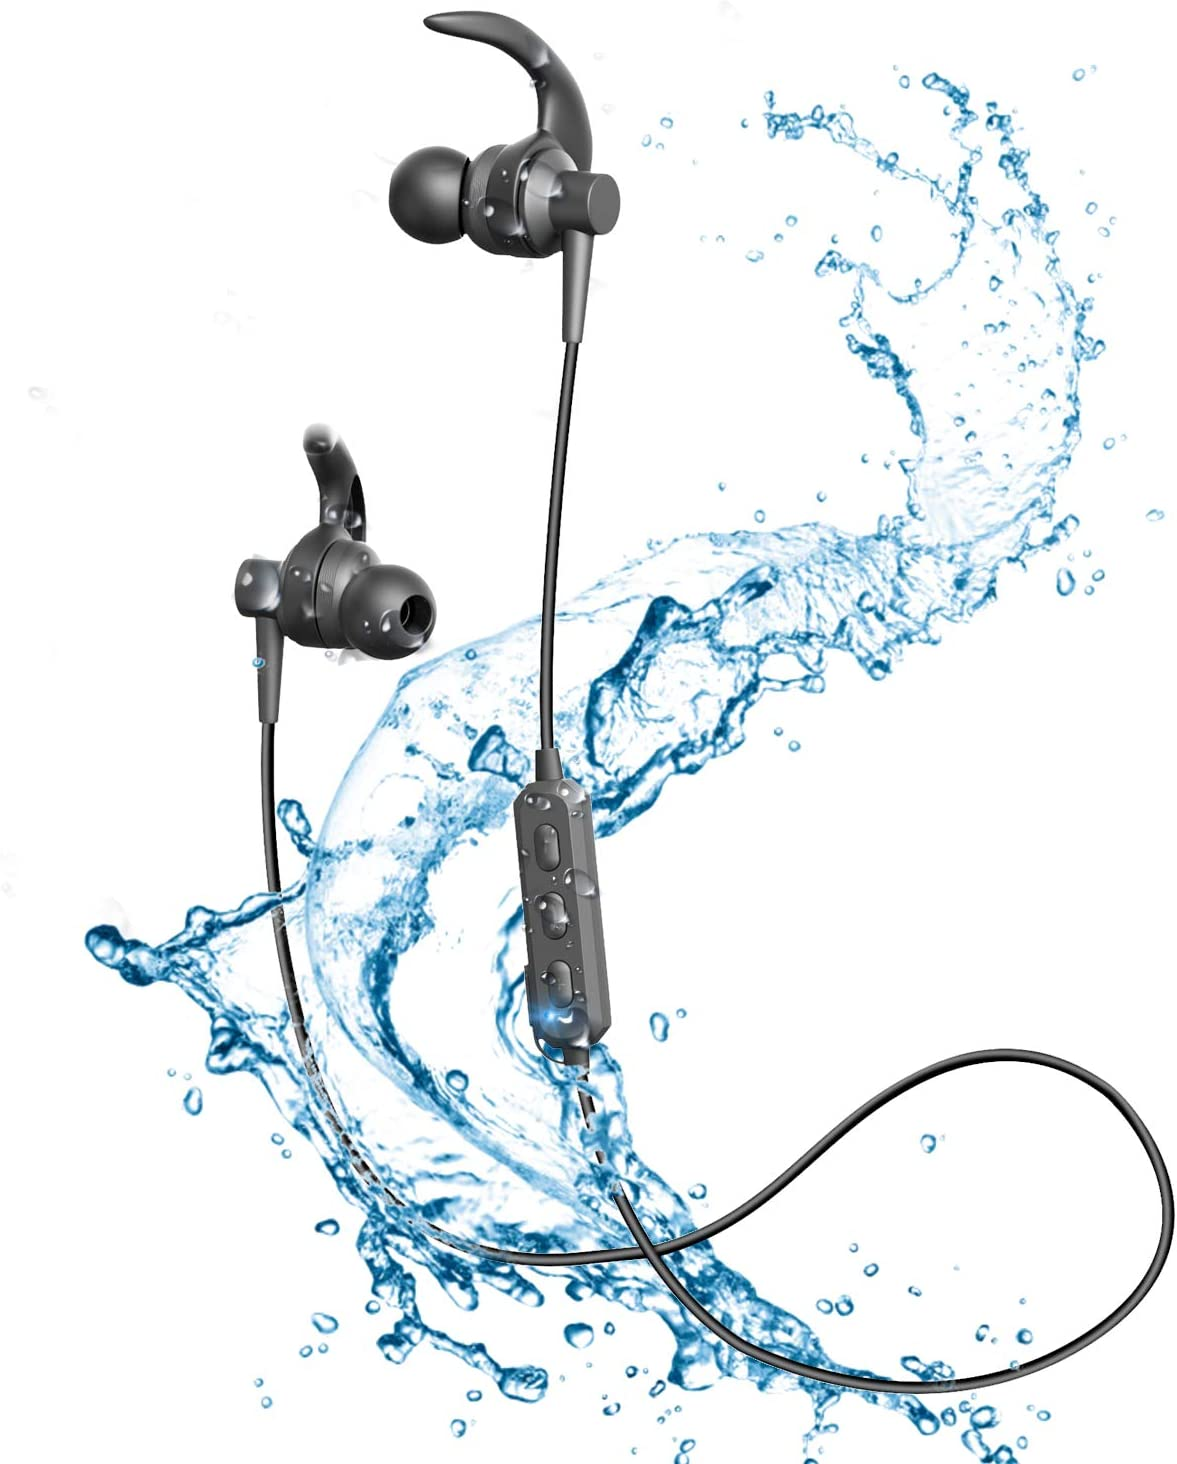 Wireless Headphones Bluetooth Headphones Wireless Sport Earphones Bluetooth 5.0 IPX6 Waterproof Sports Earphones Gym Running HD Stereo Headset w Mic 11 Hours Playtime Sports Noise Cancelling Bluetoot